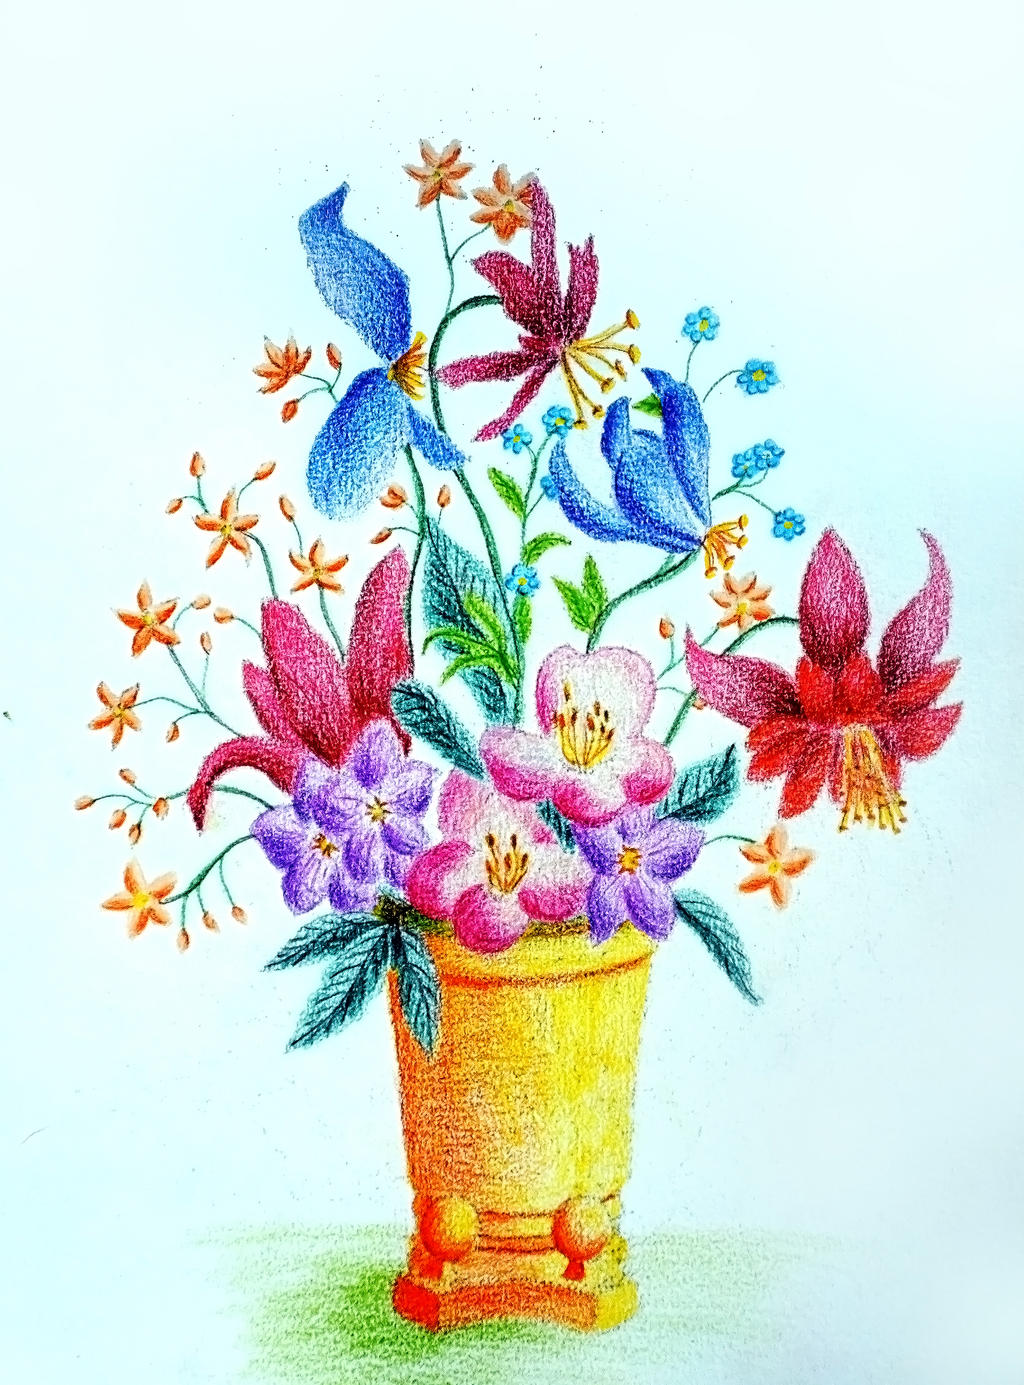 Flower vase in colored pencils I by vendoritza on DeviantArt